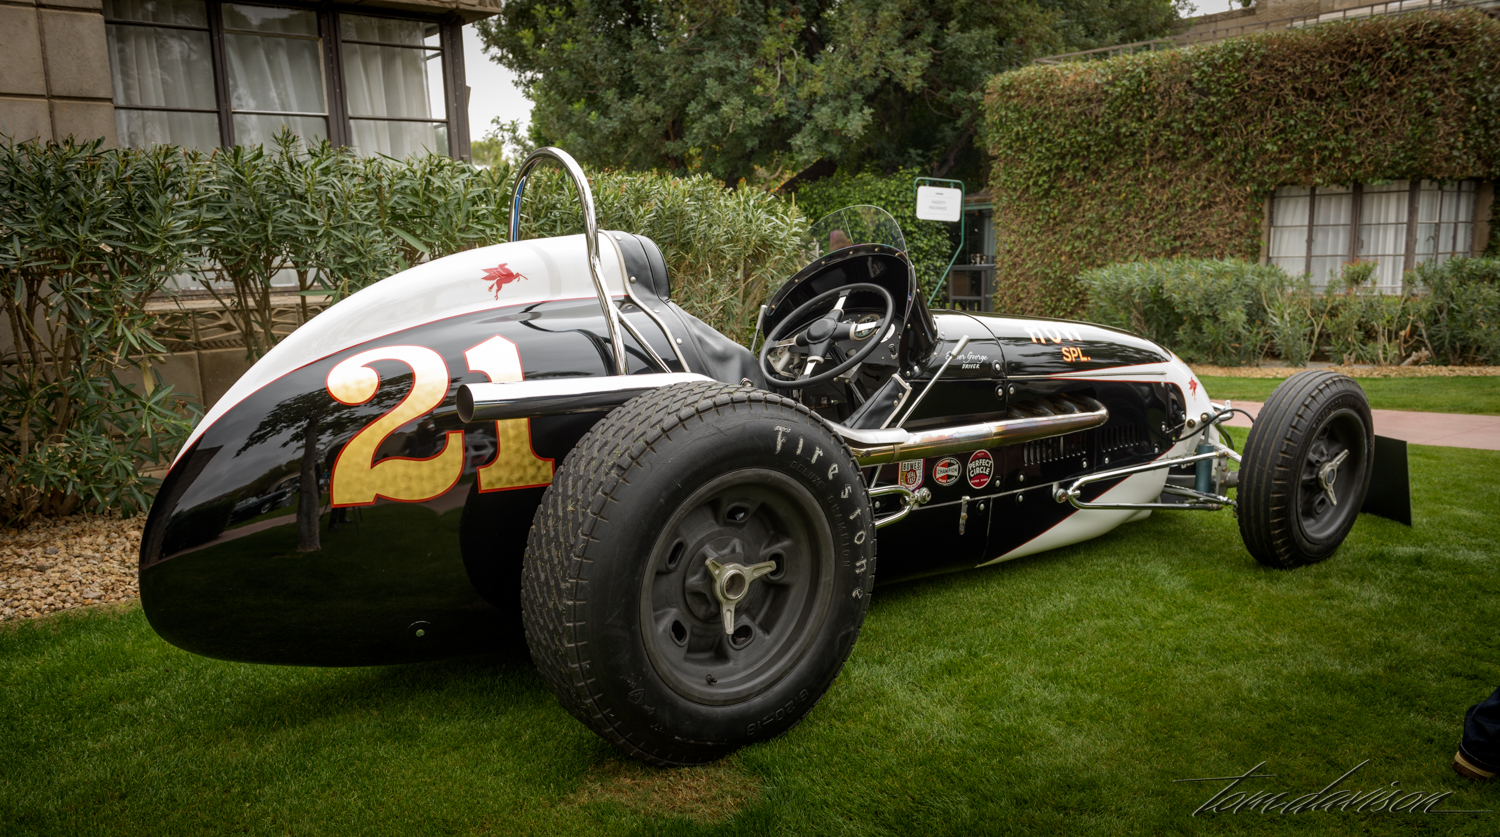 Circle Track racer mid-sixties era.